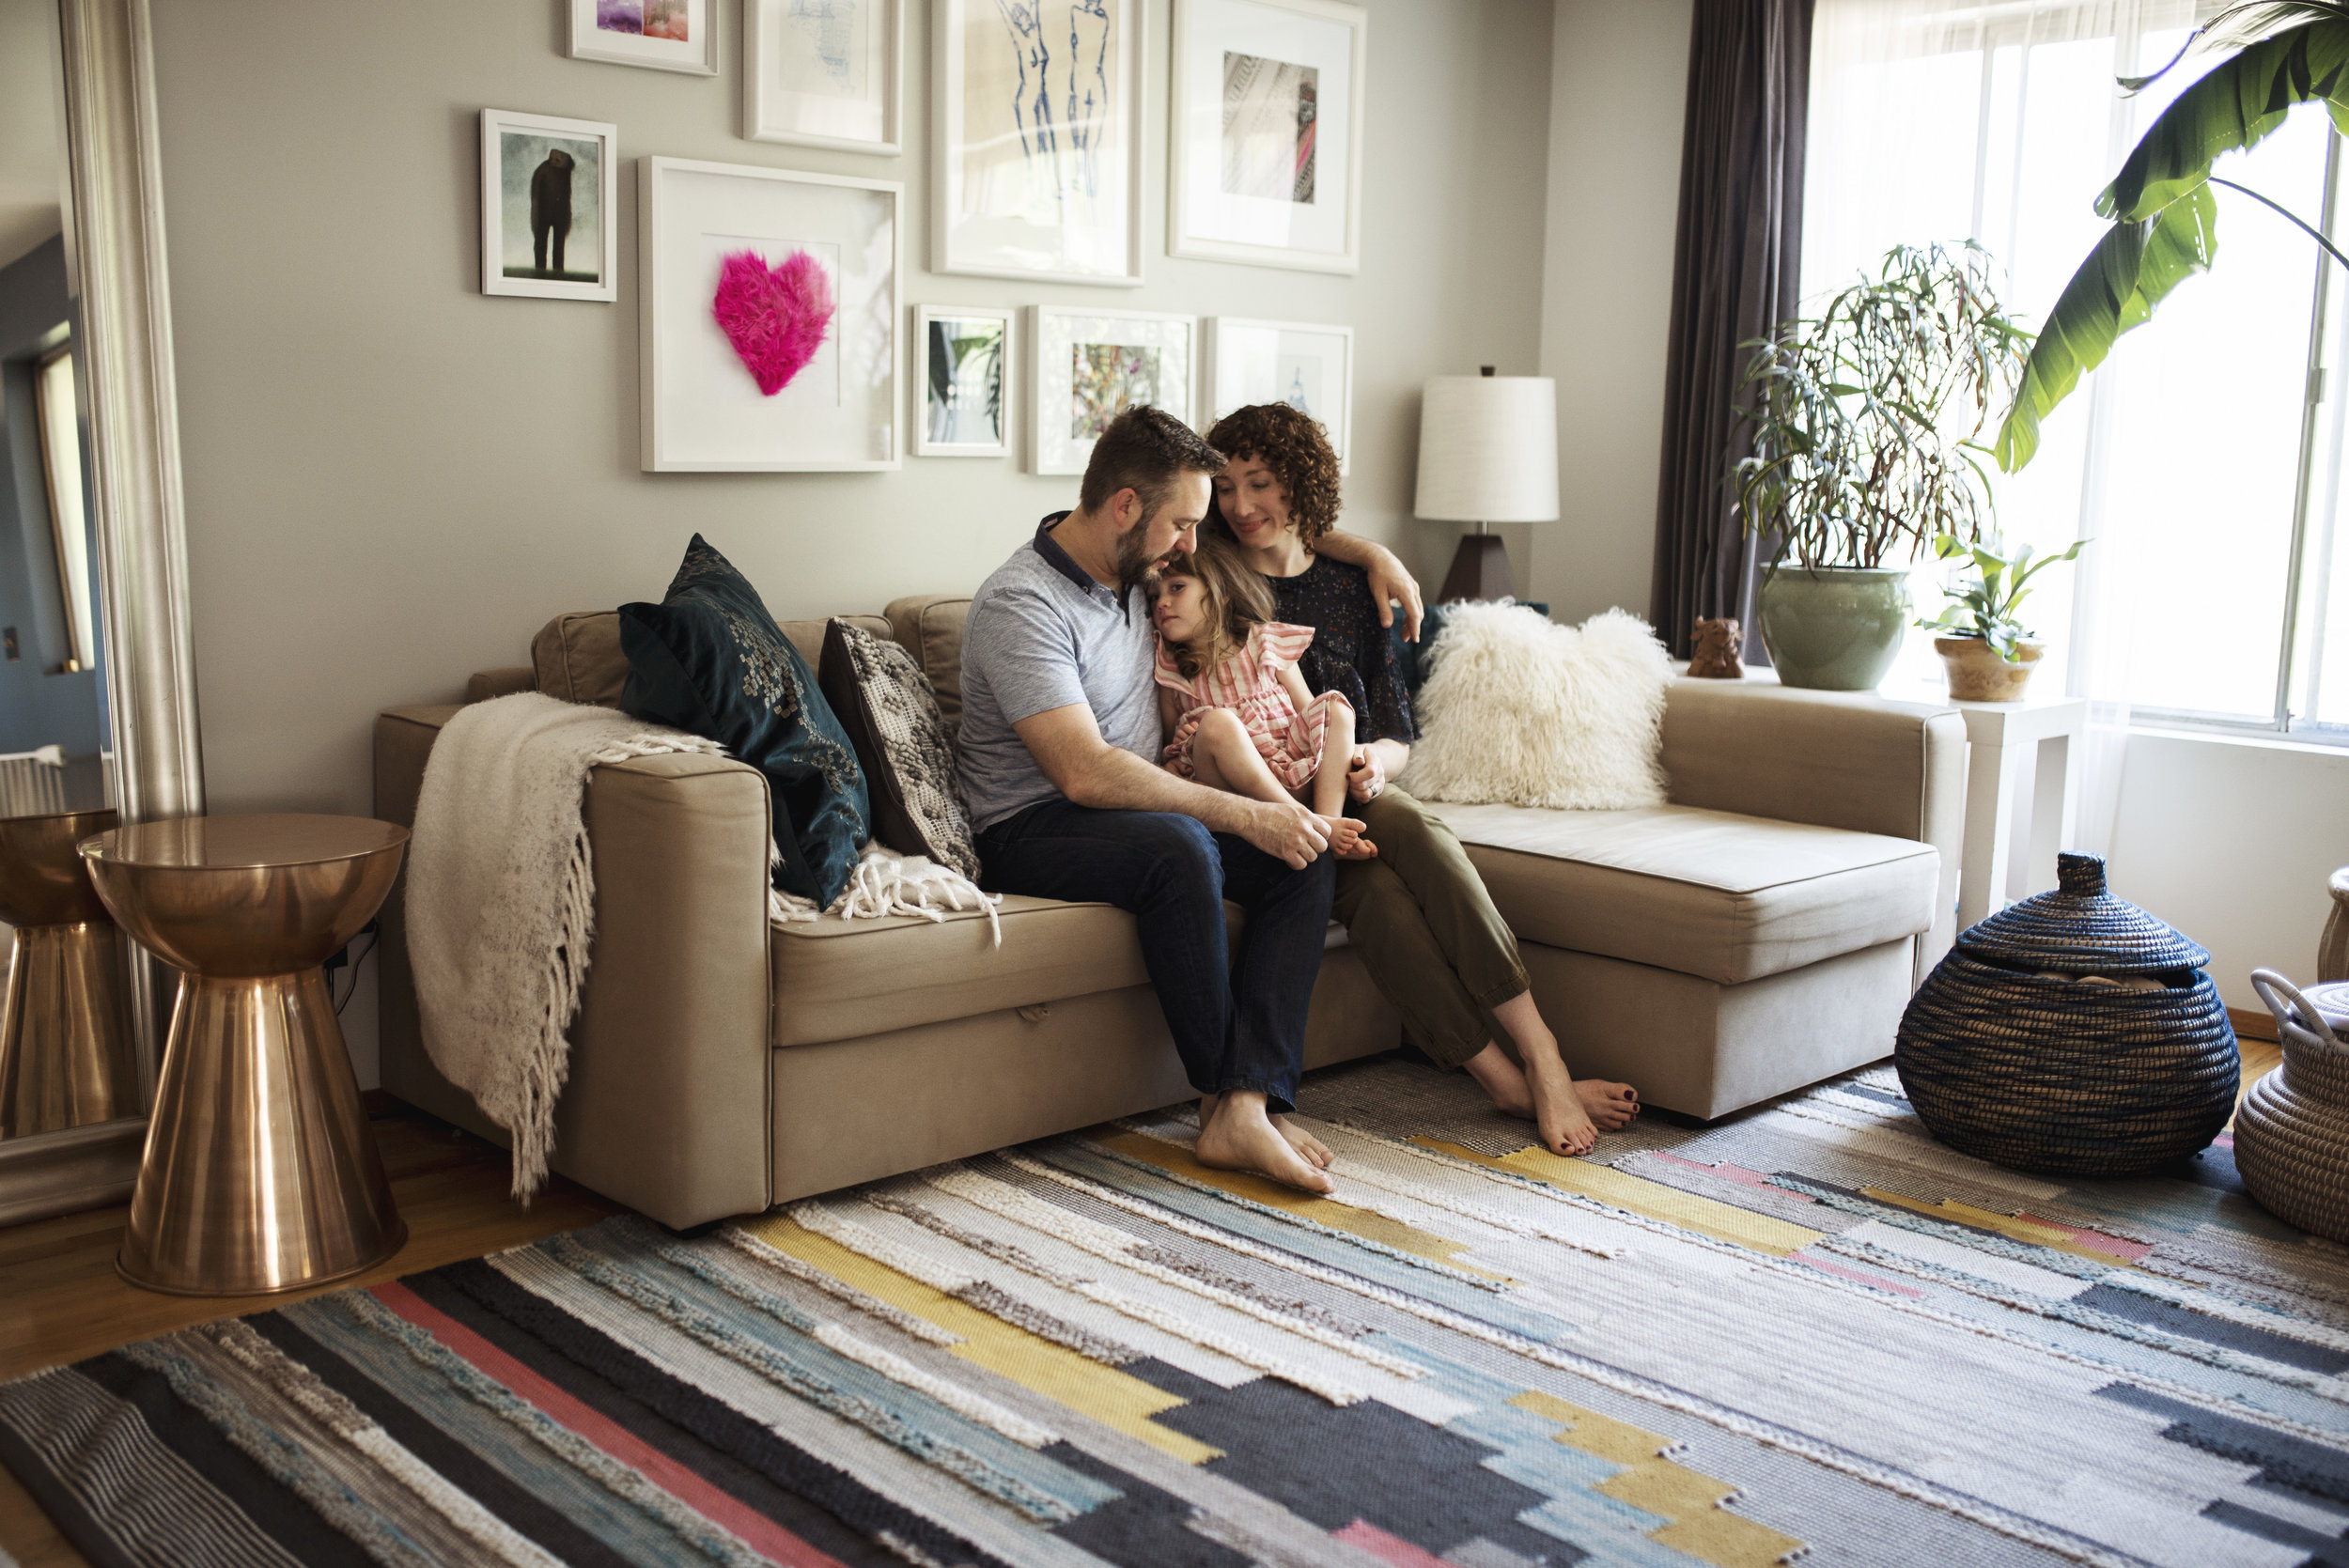 Lifestyle photographer Edmonds family is snuggling on couch in living room.